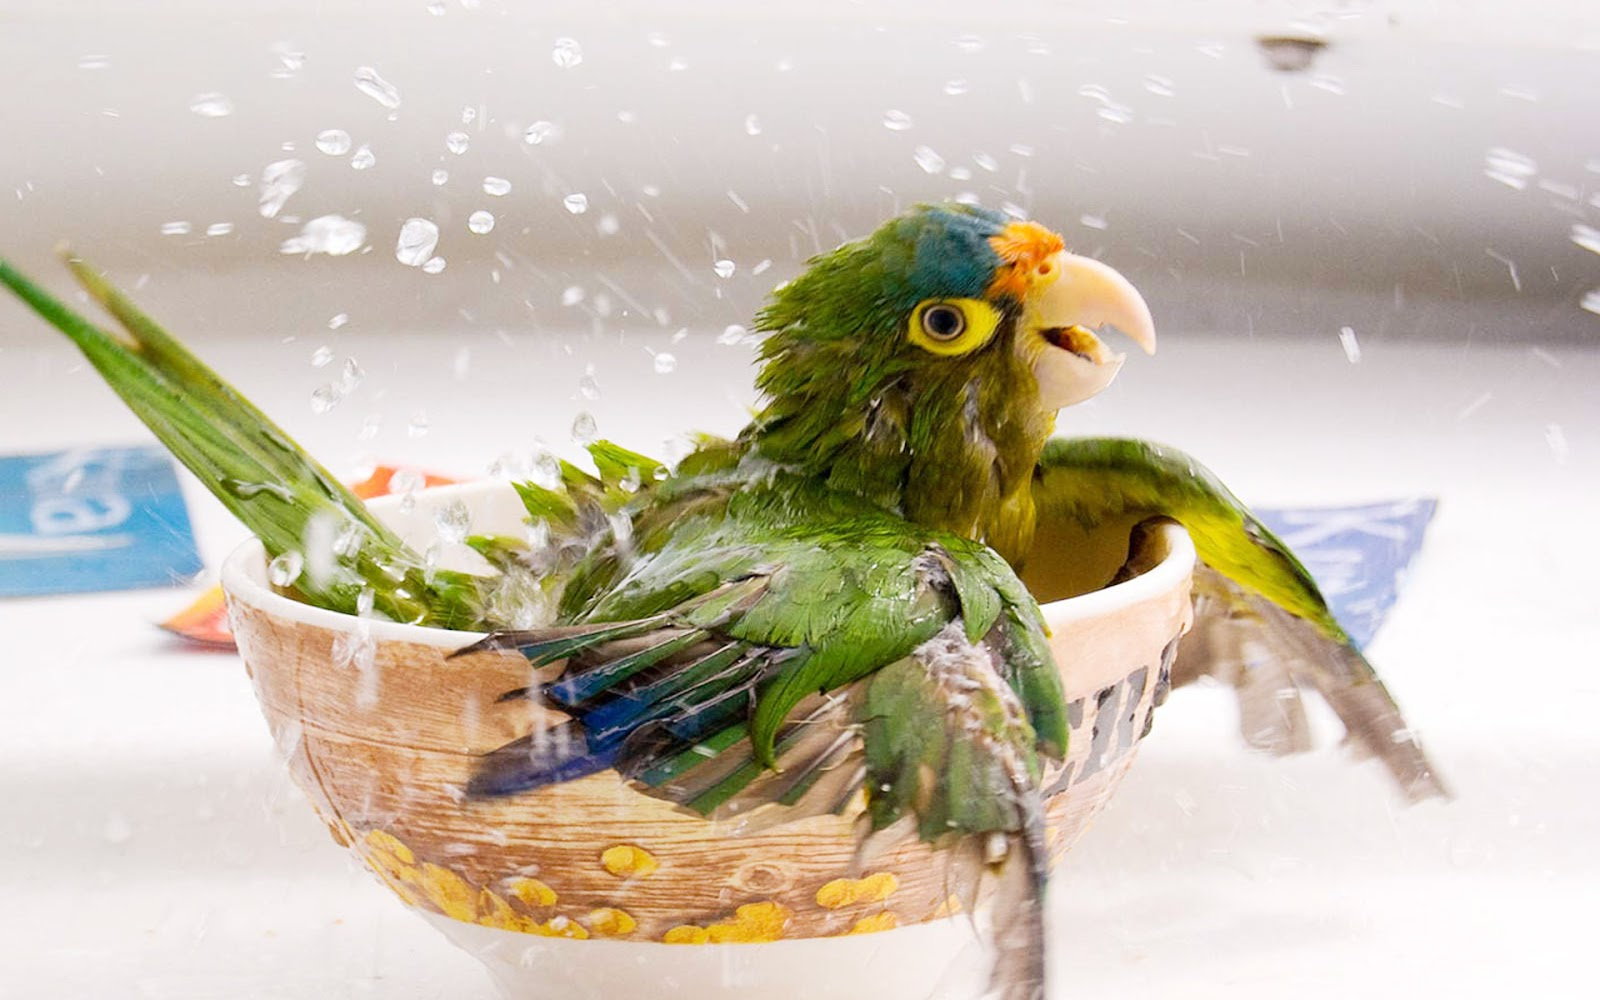 Lovely Wallpapers: Little Cute Animals Wallpapers 2013